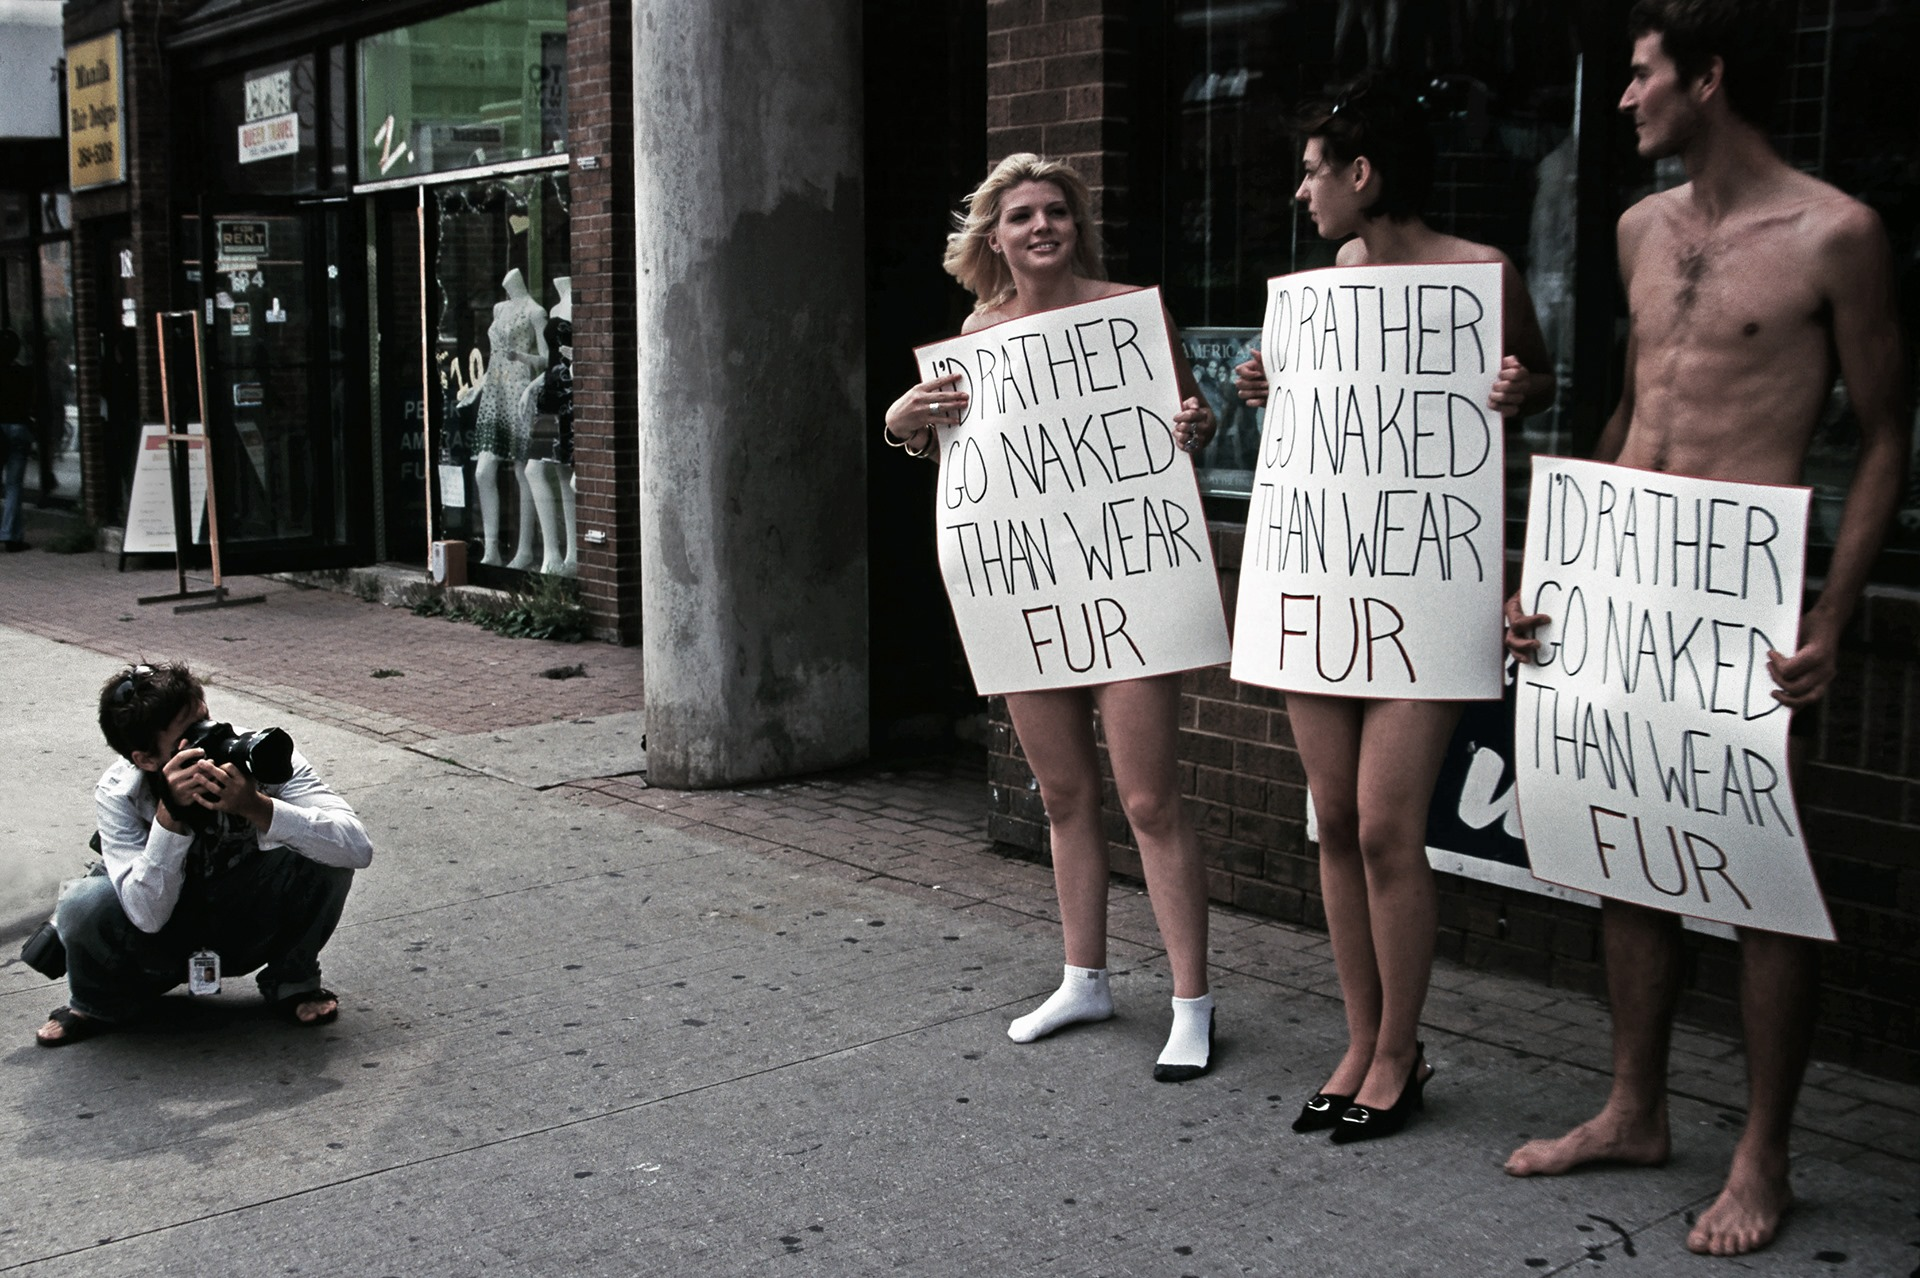 PETA claims victory, ends 30-year ad campaign against fur